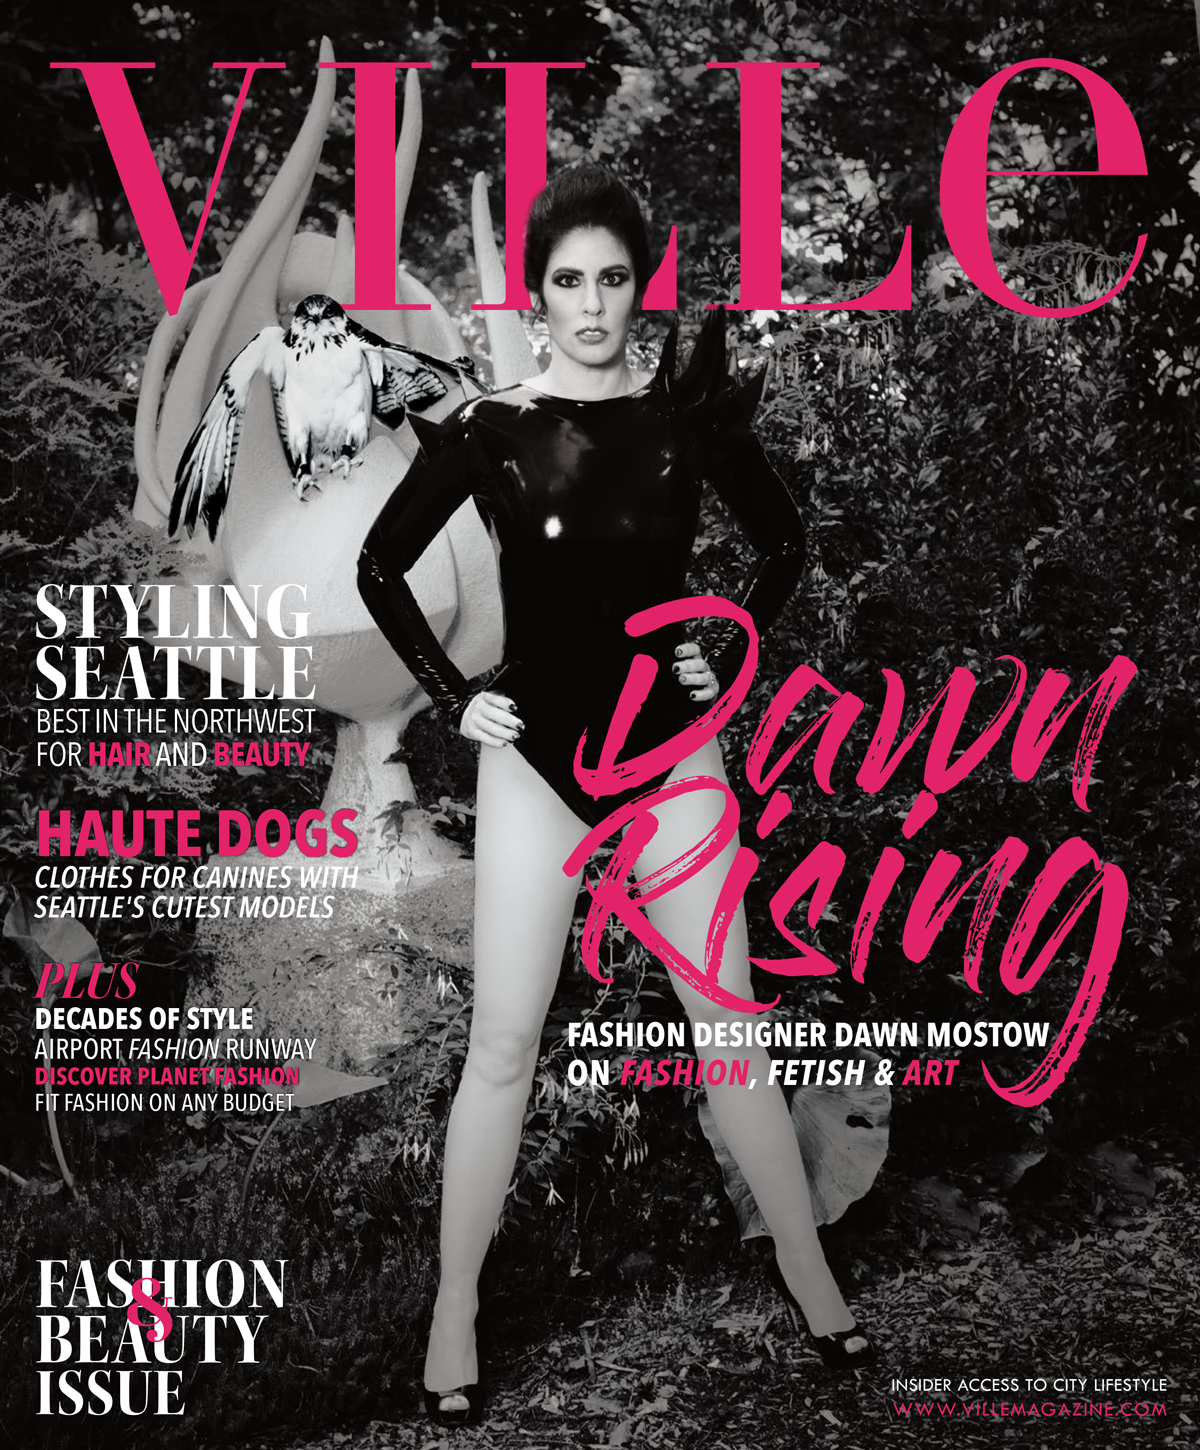 2017 Ville Magazine Fall Fashion Issue